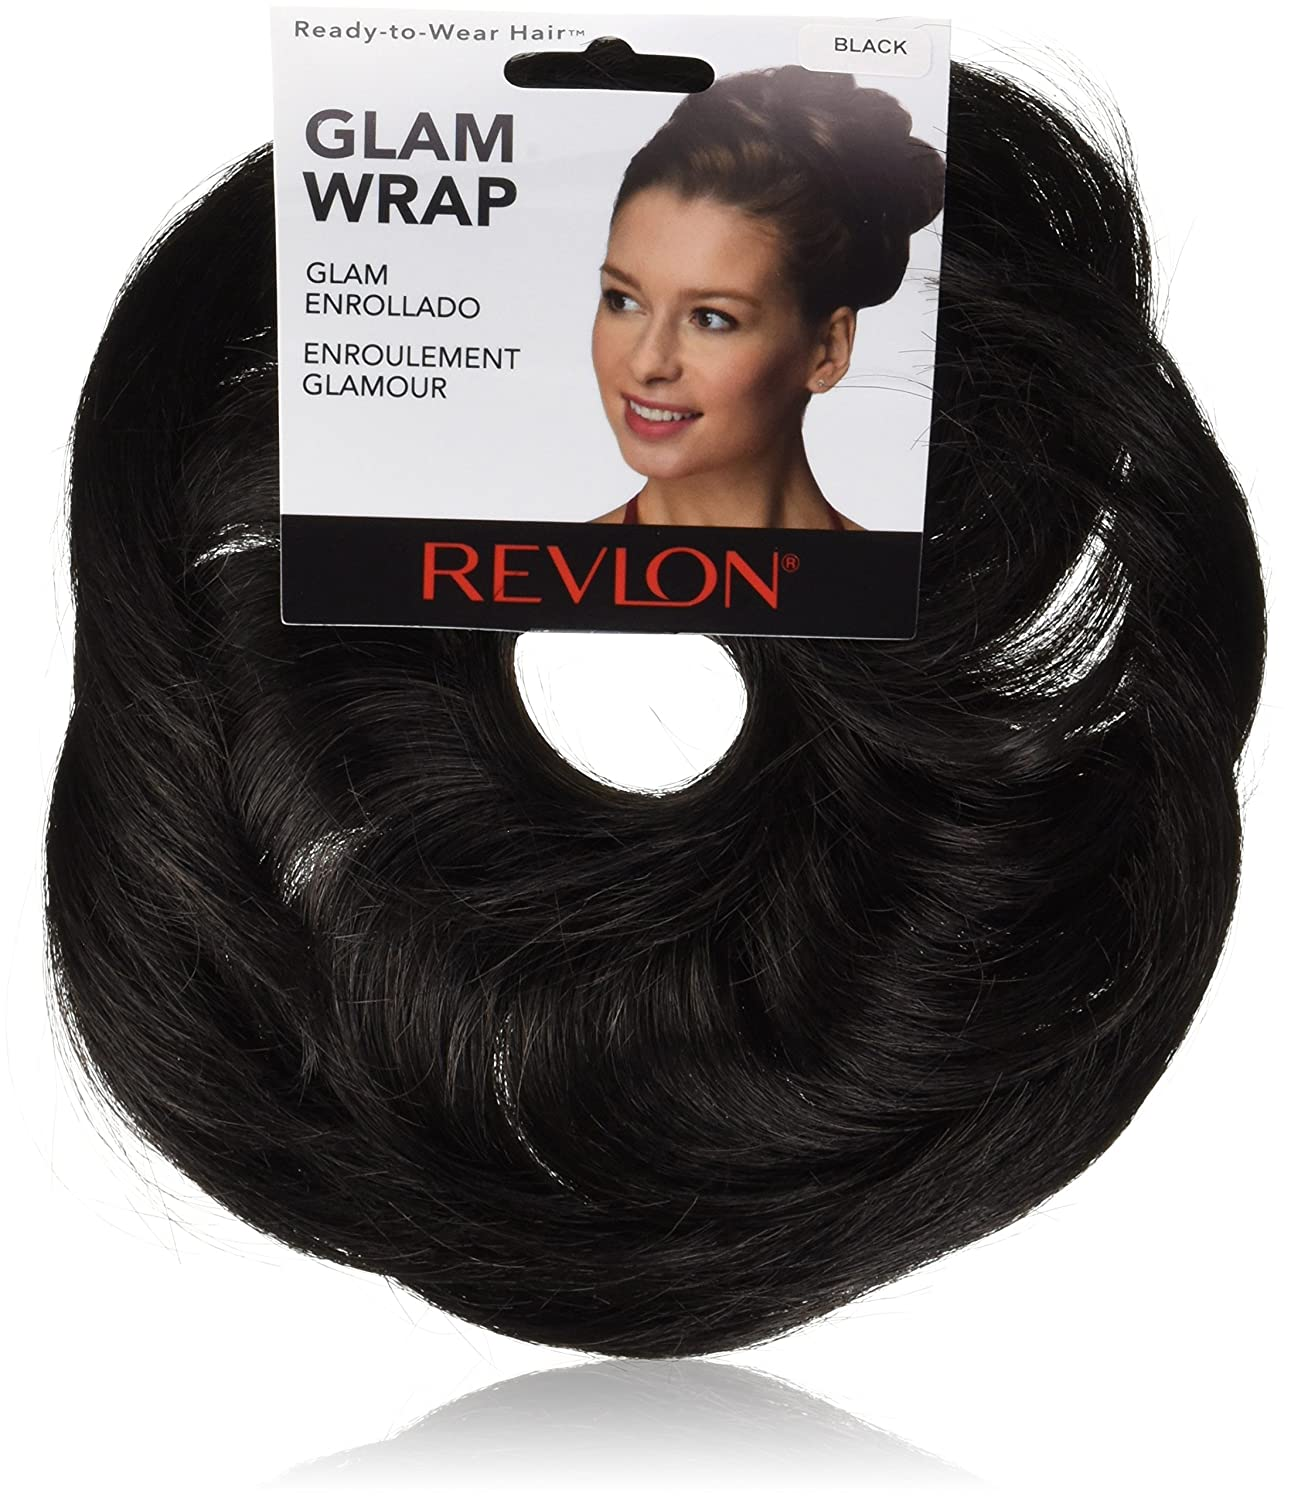 Revlon Ready-To-Wear Hair GLAM WRAP (Black)